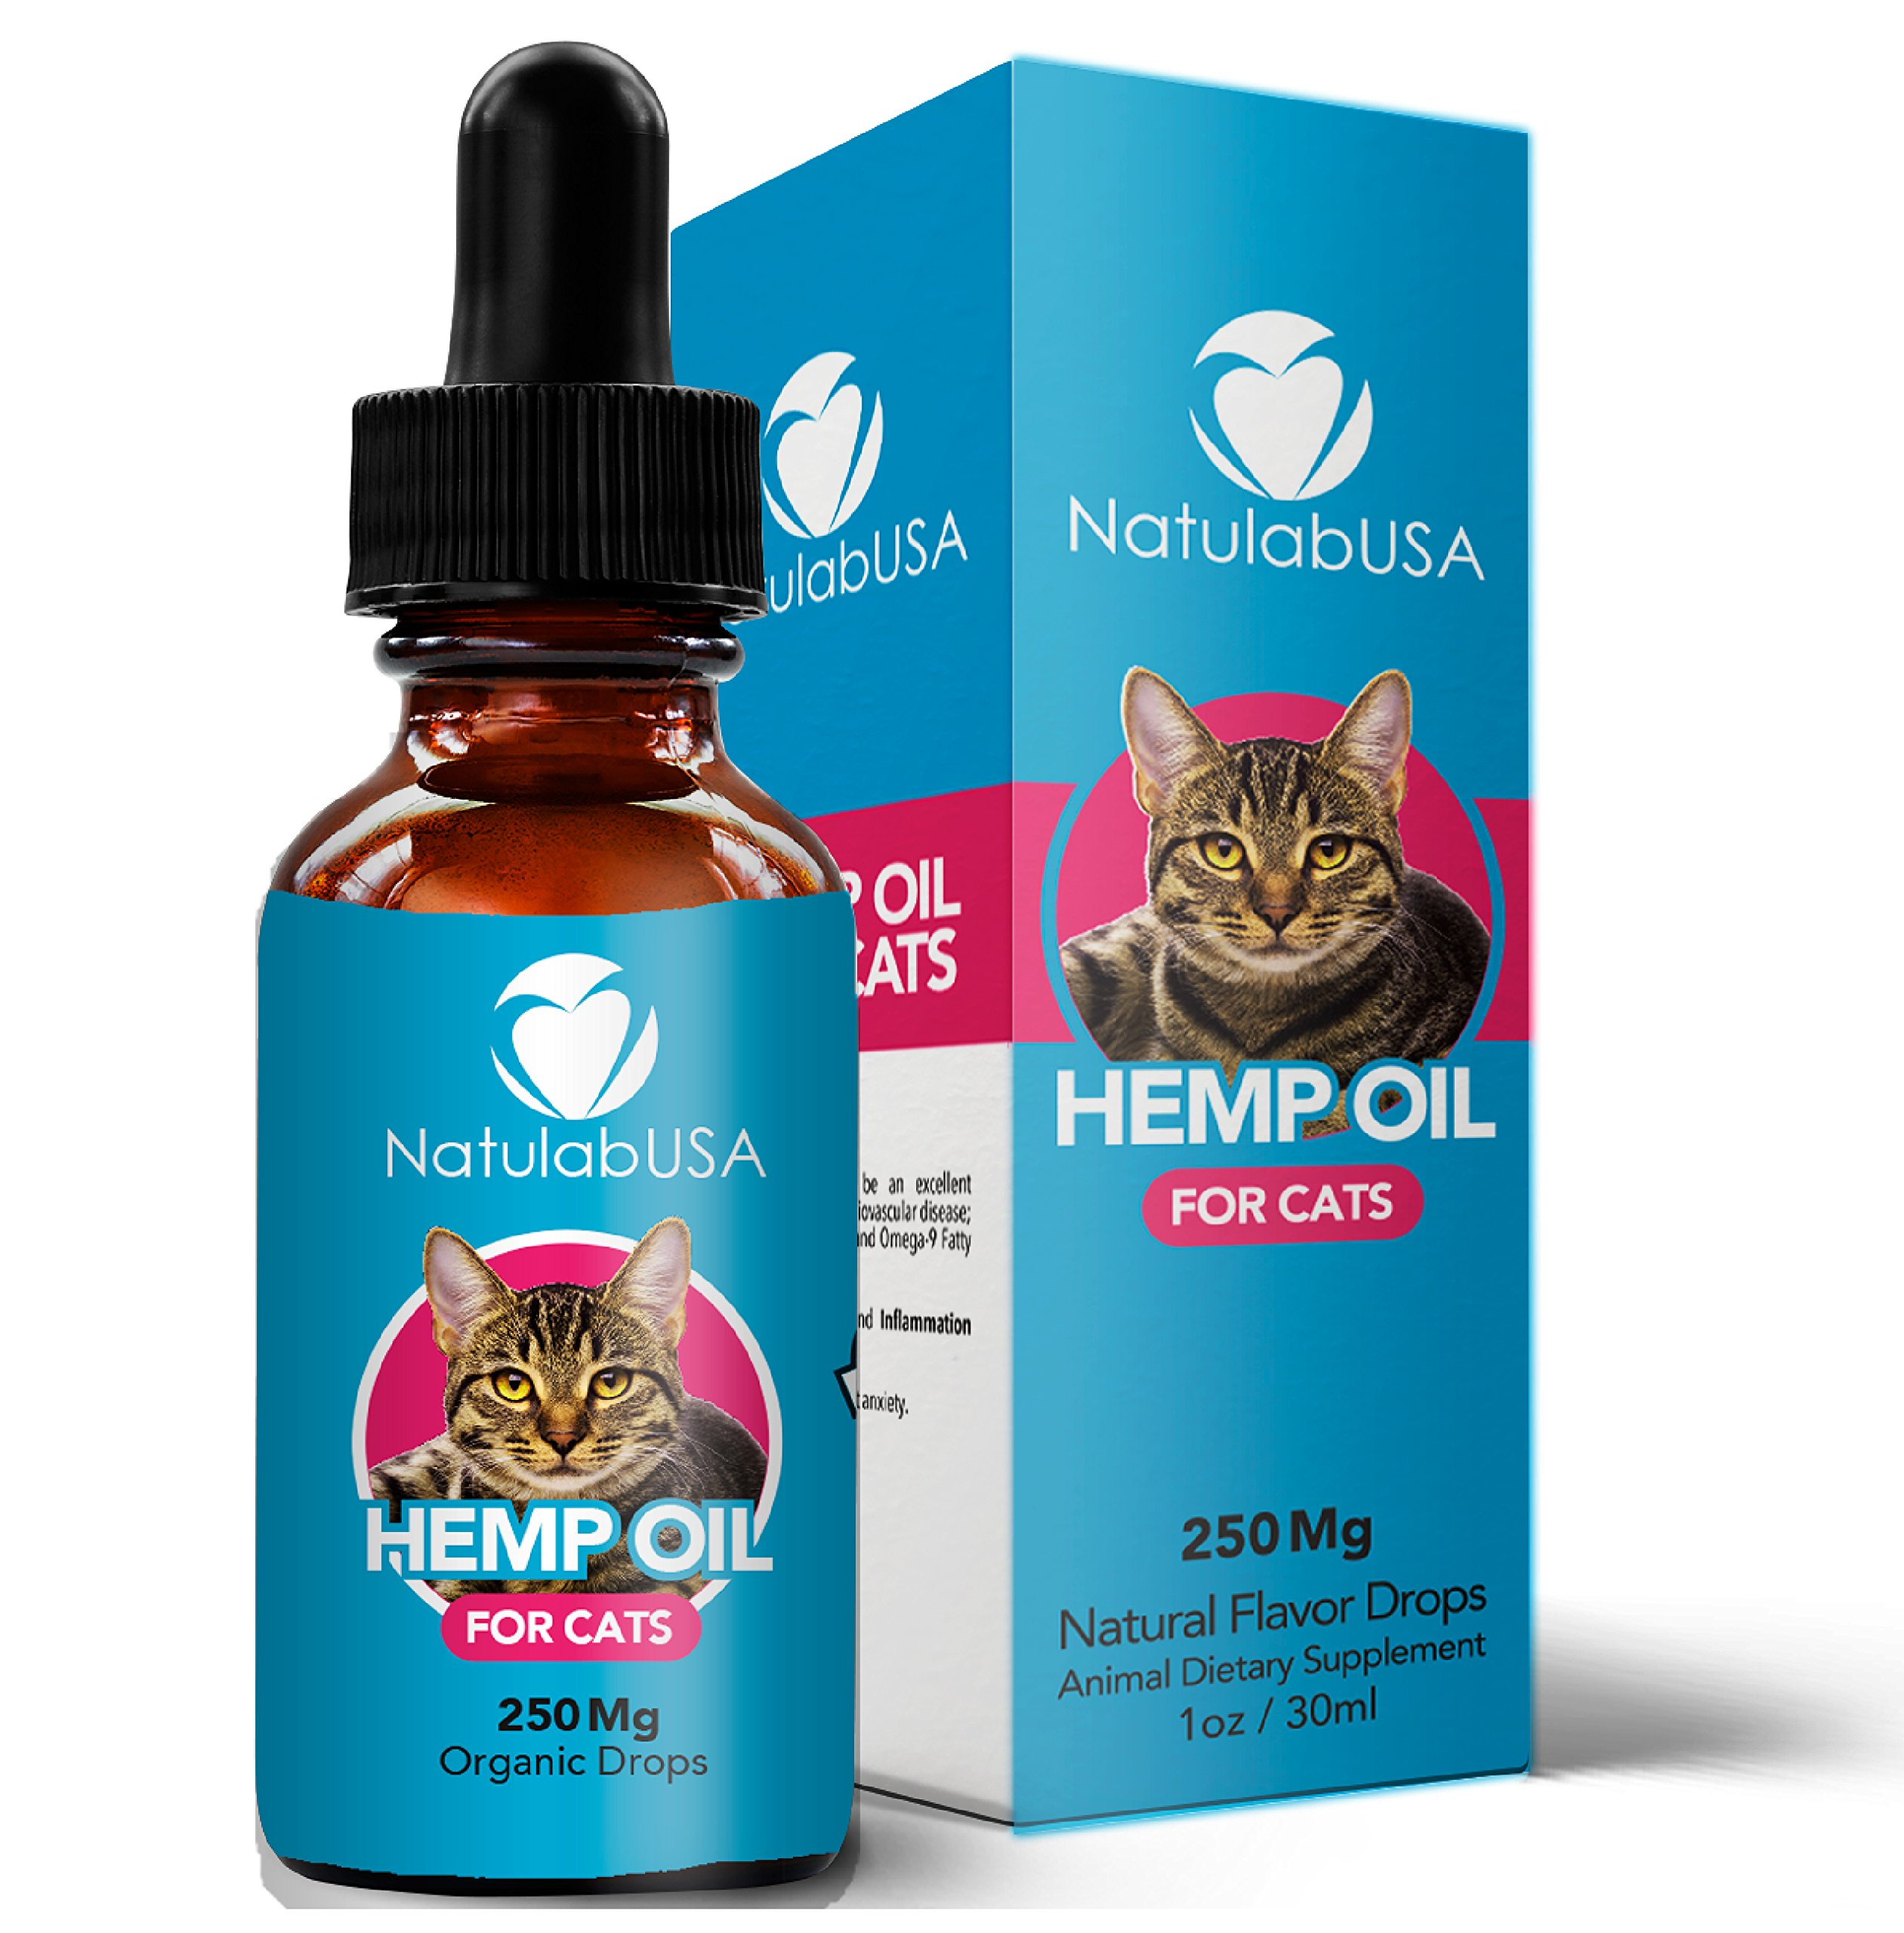 Hemp Oil For Pets & Cats – Fast Results - Pet Anxiety & Stress Relief Serum - Pet Arthritis & Joint Health – SIMPLY APPLY TO FOOD - Separation Anxiety Relief - Pure Organic Hemp Seed Oil - NatulabUSA